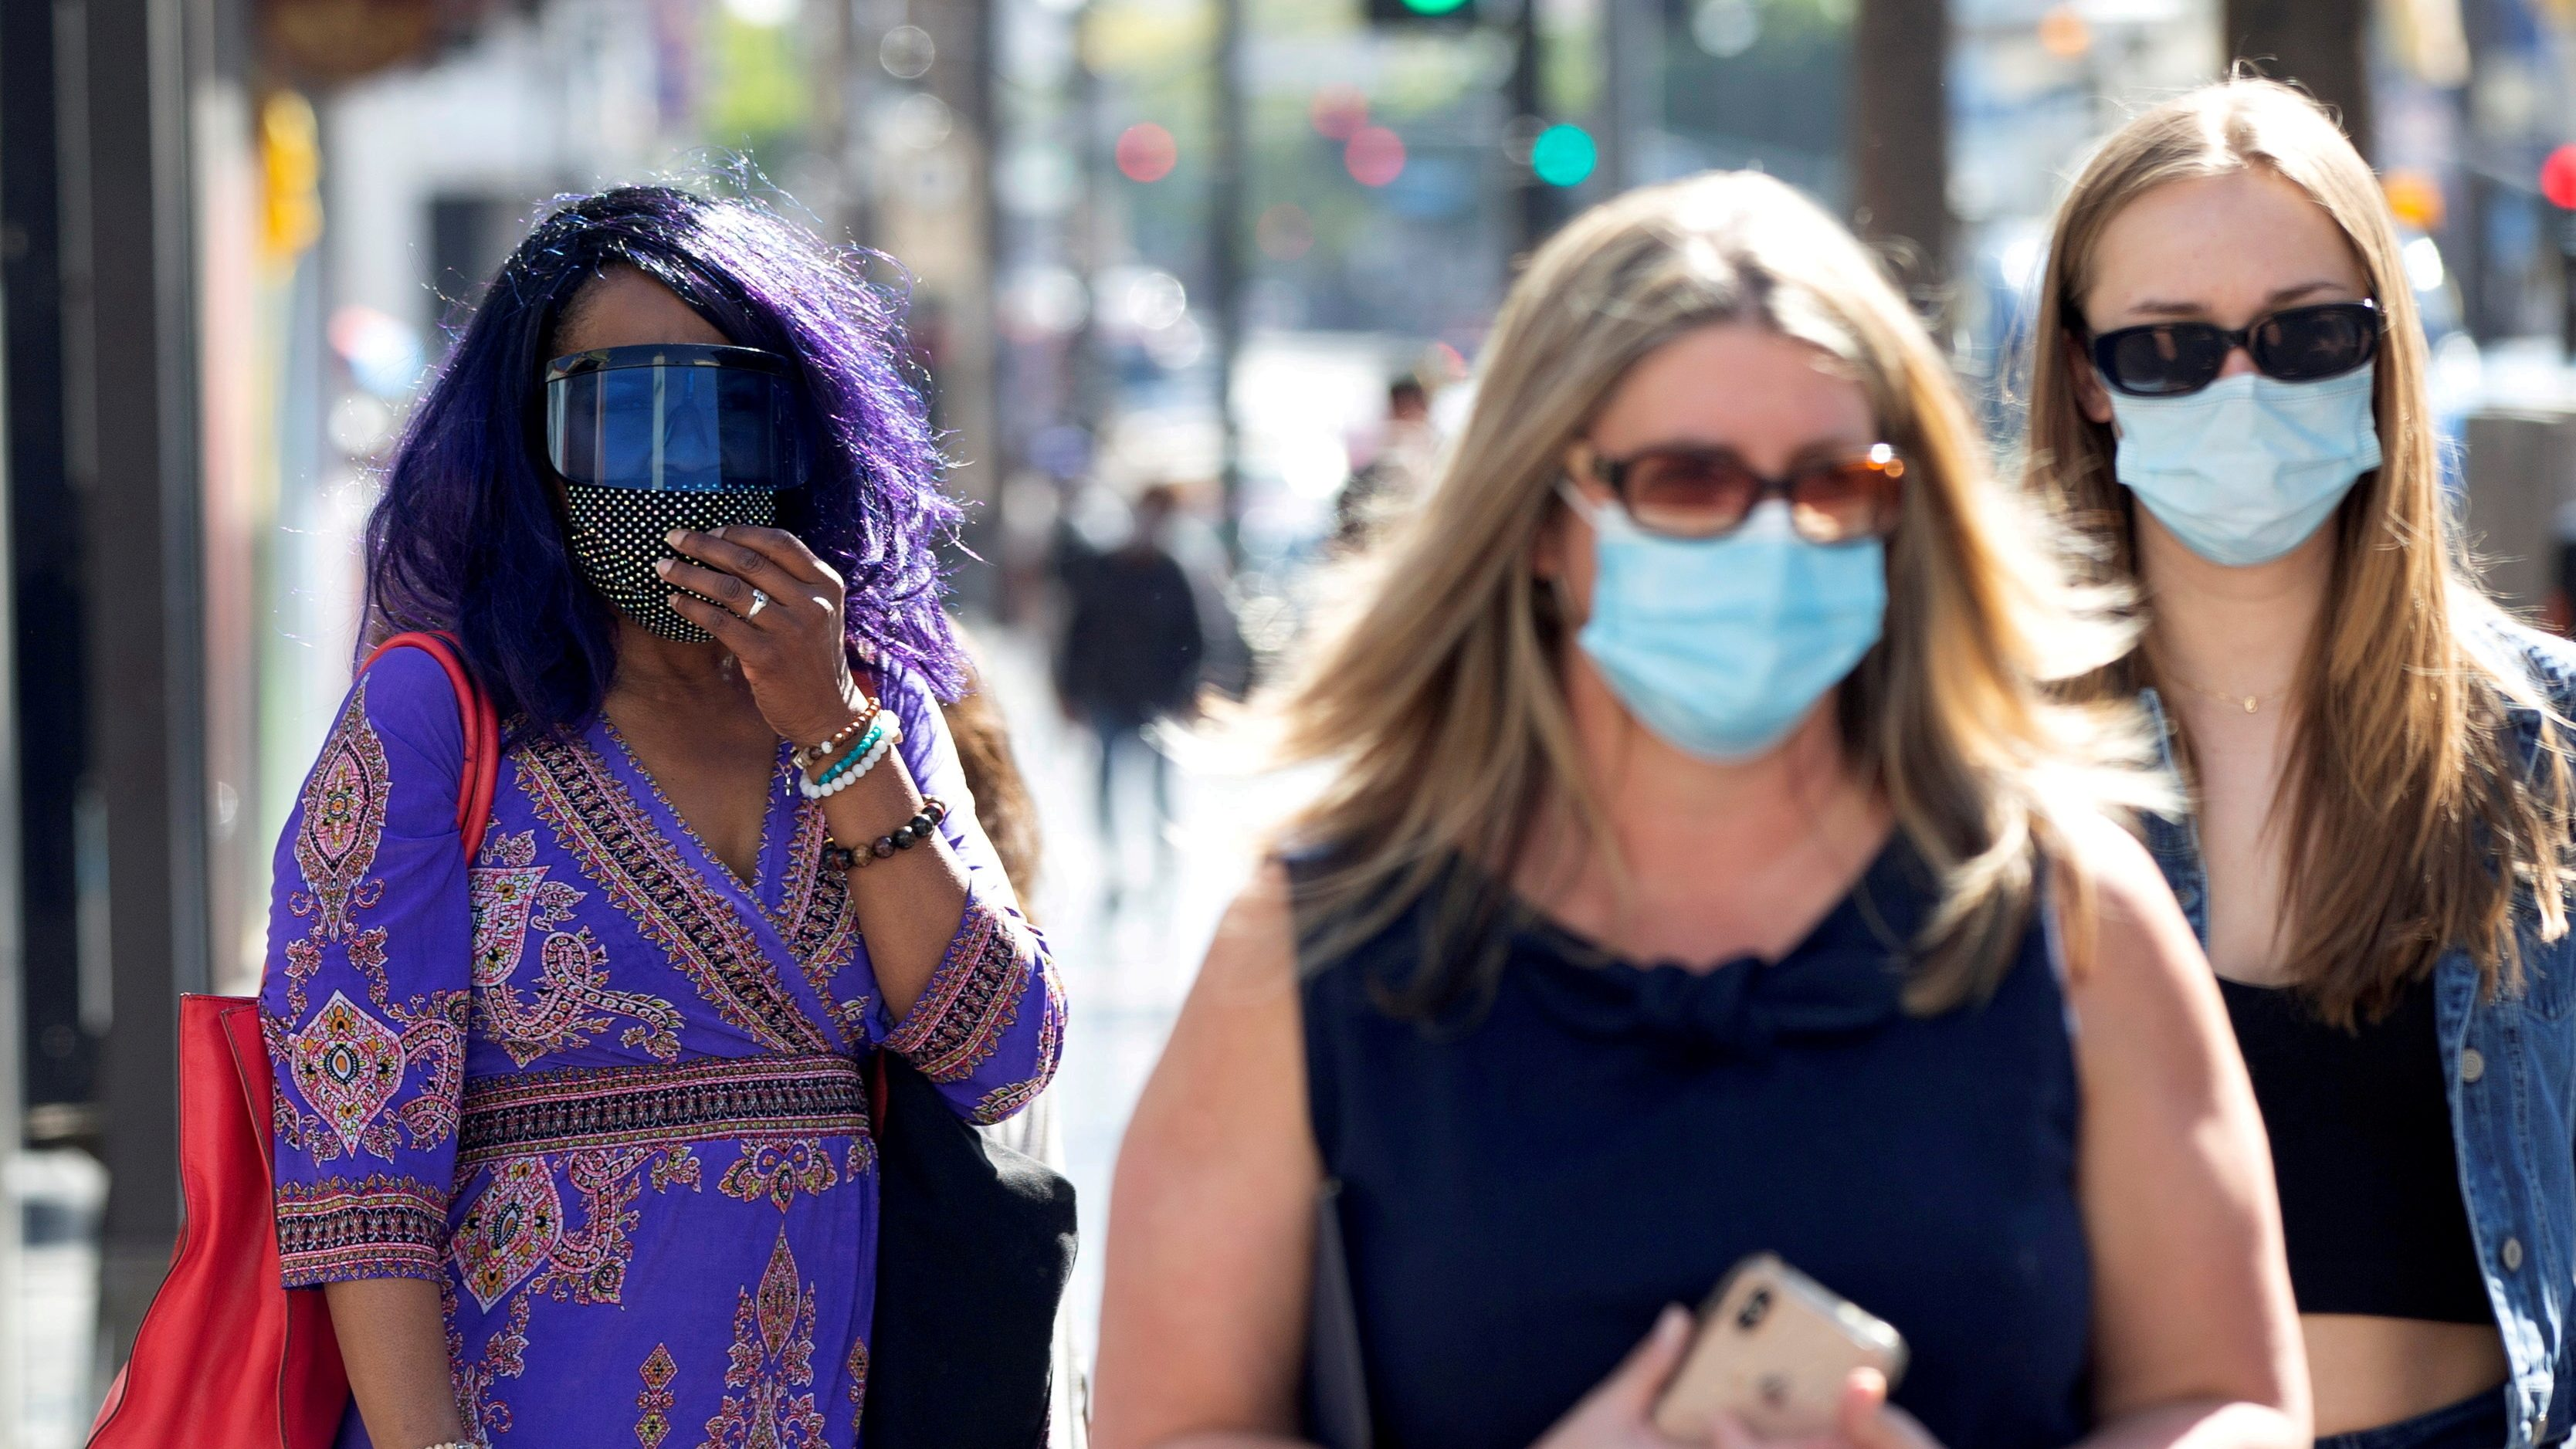 People wearing face protective masks walk on Hollywood Blvd during the outbreak of the coronavirus disease (COVID-19), in Los Angeles